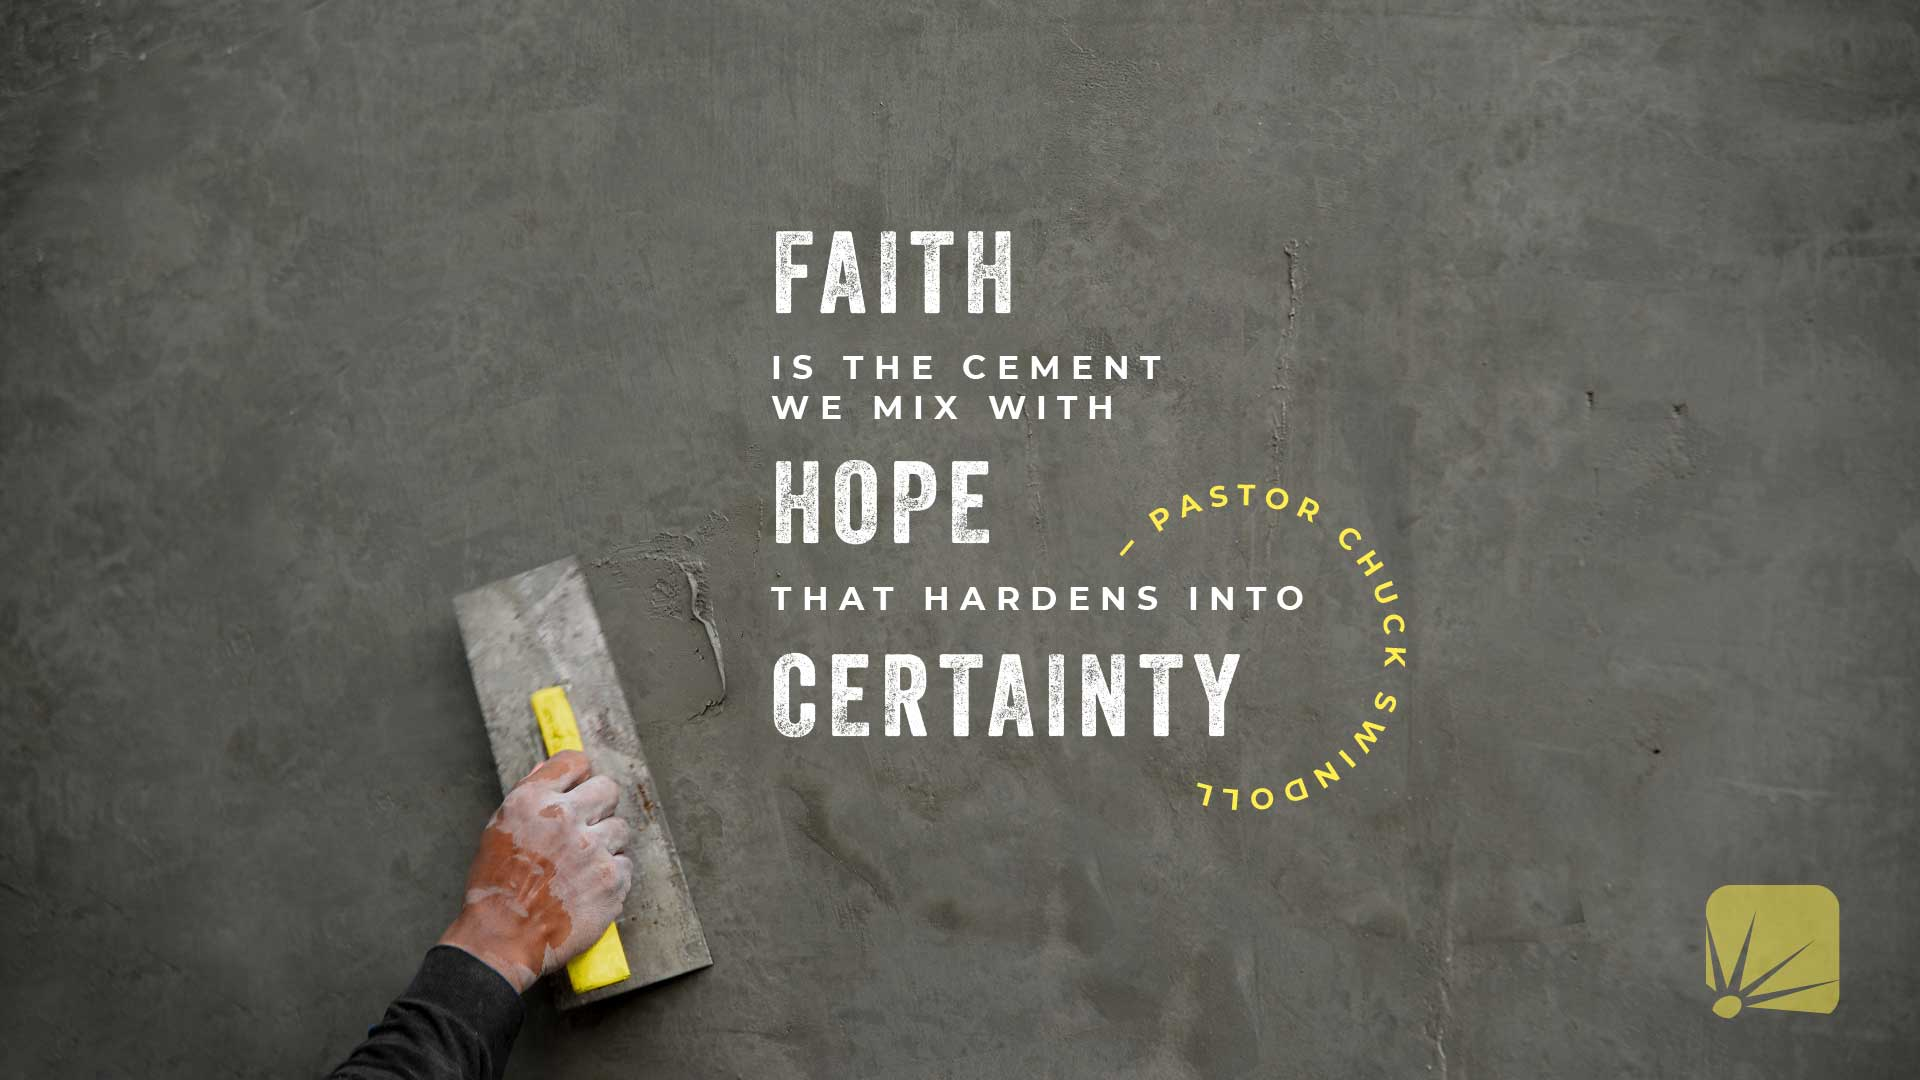 quote: Faith is the cement we mix with hope that hardens into certainty.